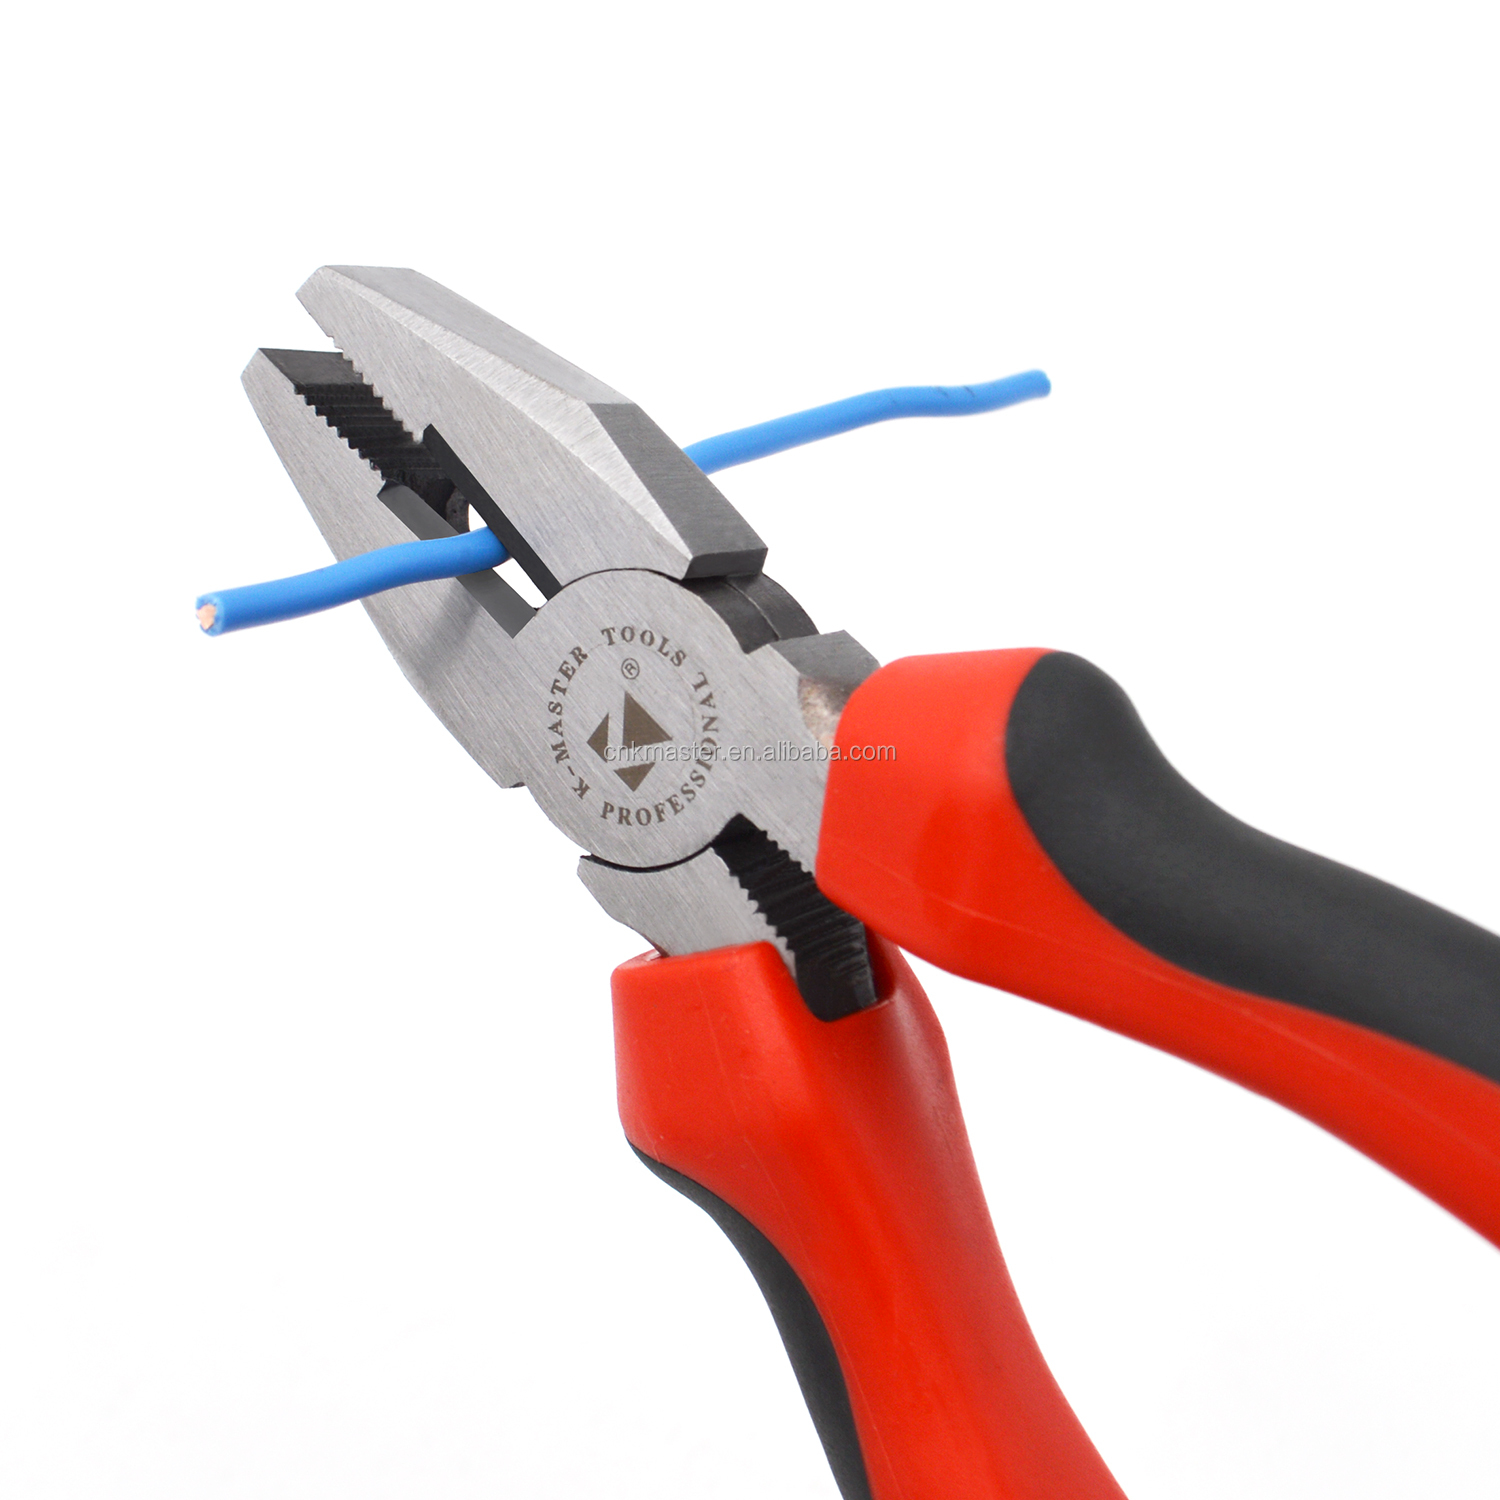 COMBINATION CUTTING PLIERS GS-200 ELECTRICIAN  PLIERS